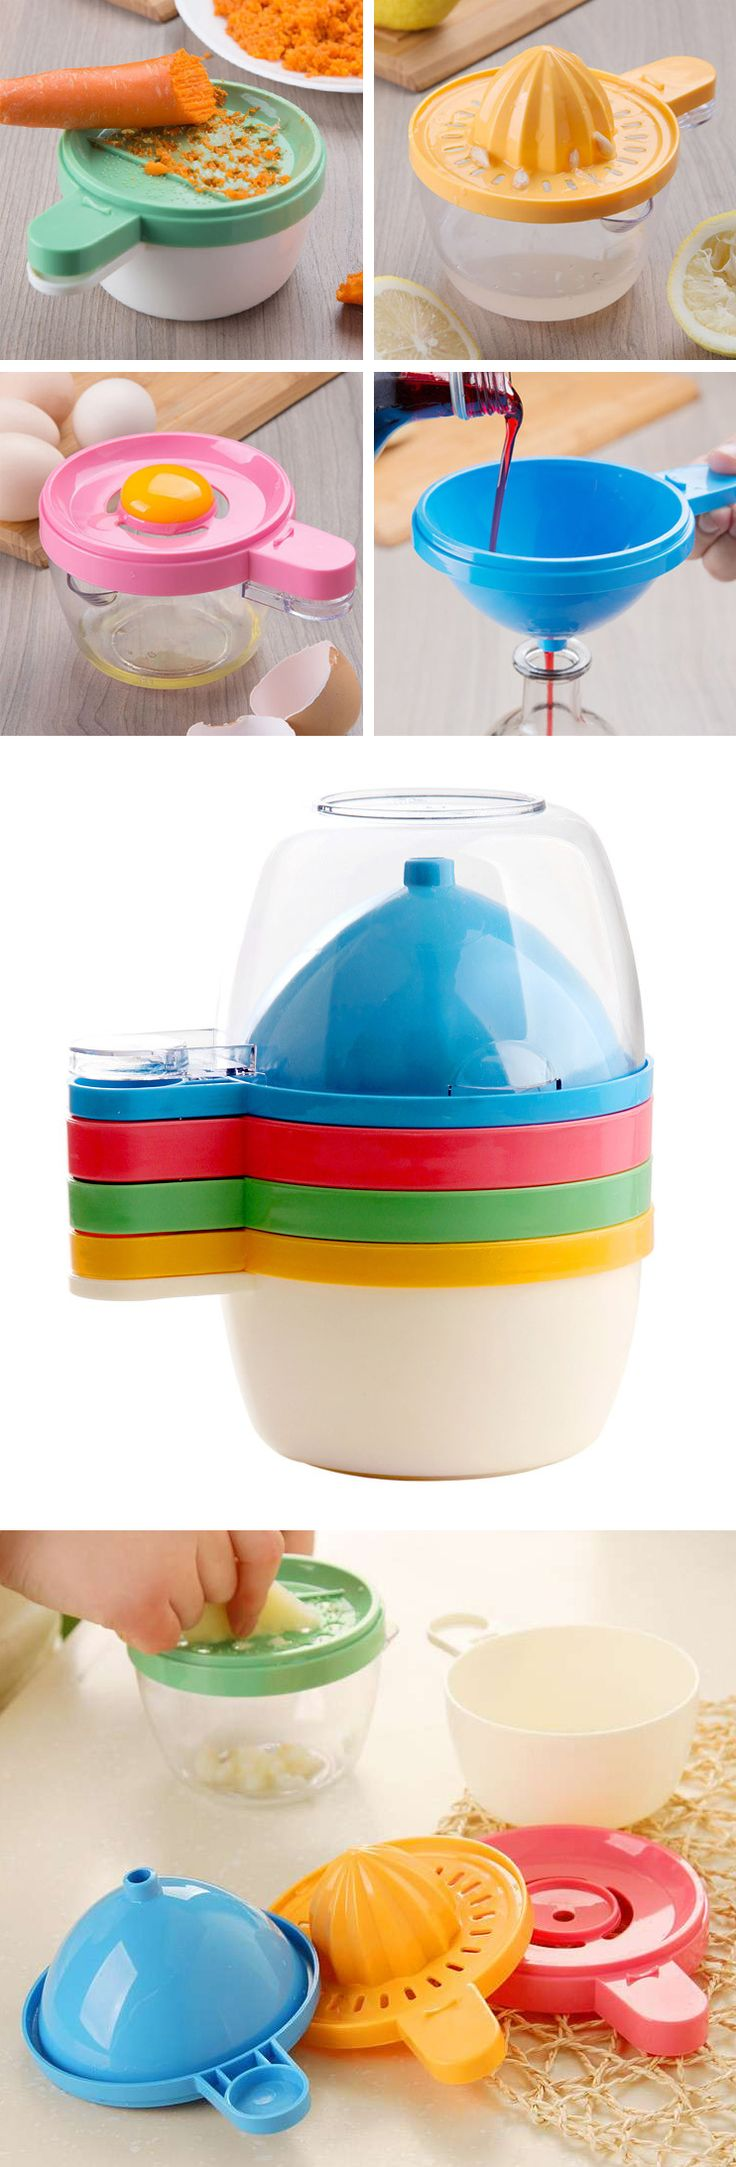 4-in-1 kitchen tool - grater, juicer, egg separator and funnel! Space-saving and clever! #product_design